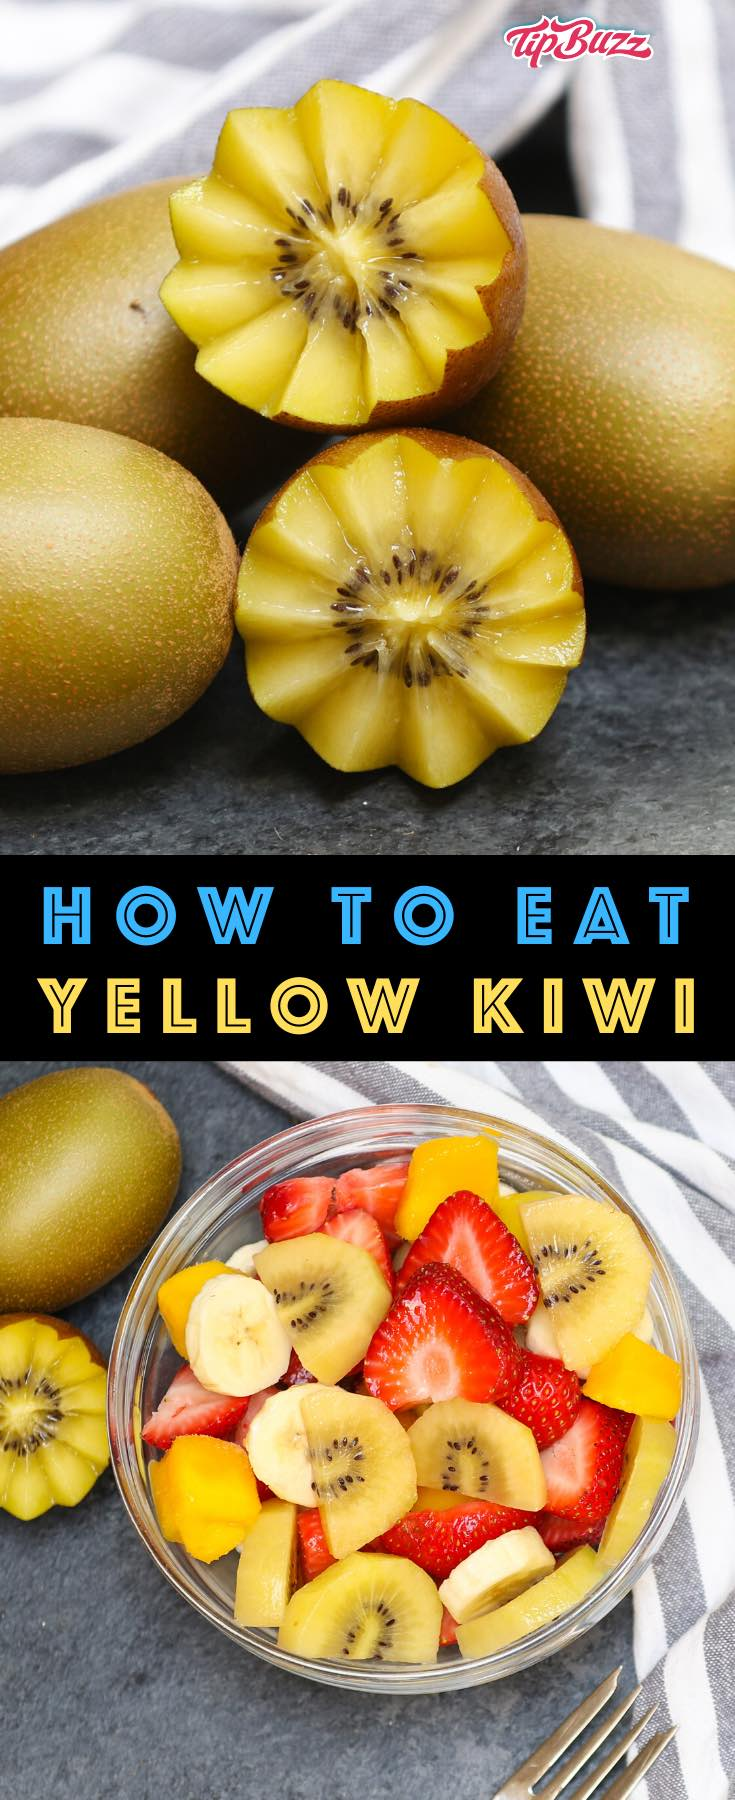 Golden Kiwi Fruit or Yellow Kiwi is a delicious tropical fruits with sweeter flesh and smoother skin than green kiwis. They're known as Zespri SunGolds and can be used in recipes for fruit salads and smoothes. #goldenkiwi #yellowkiwi